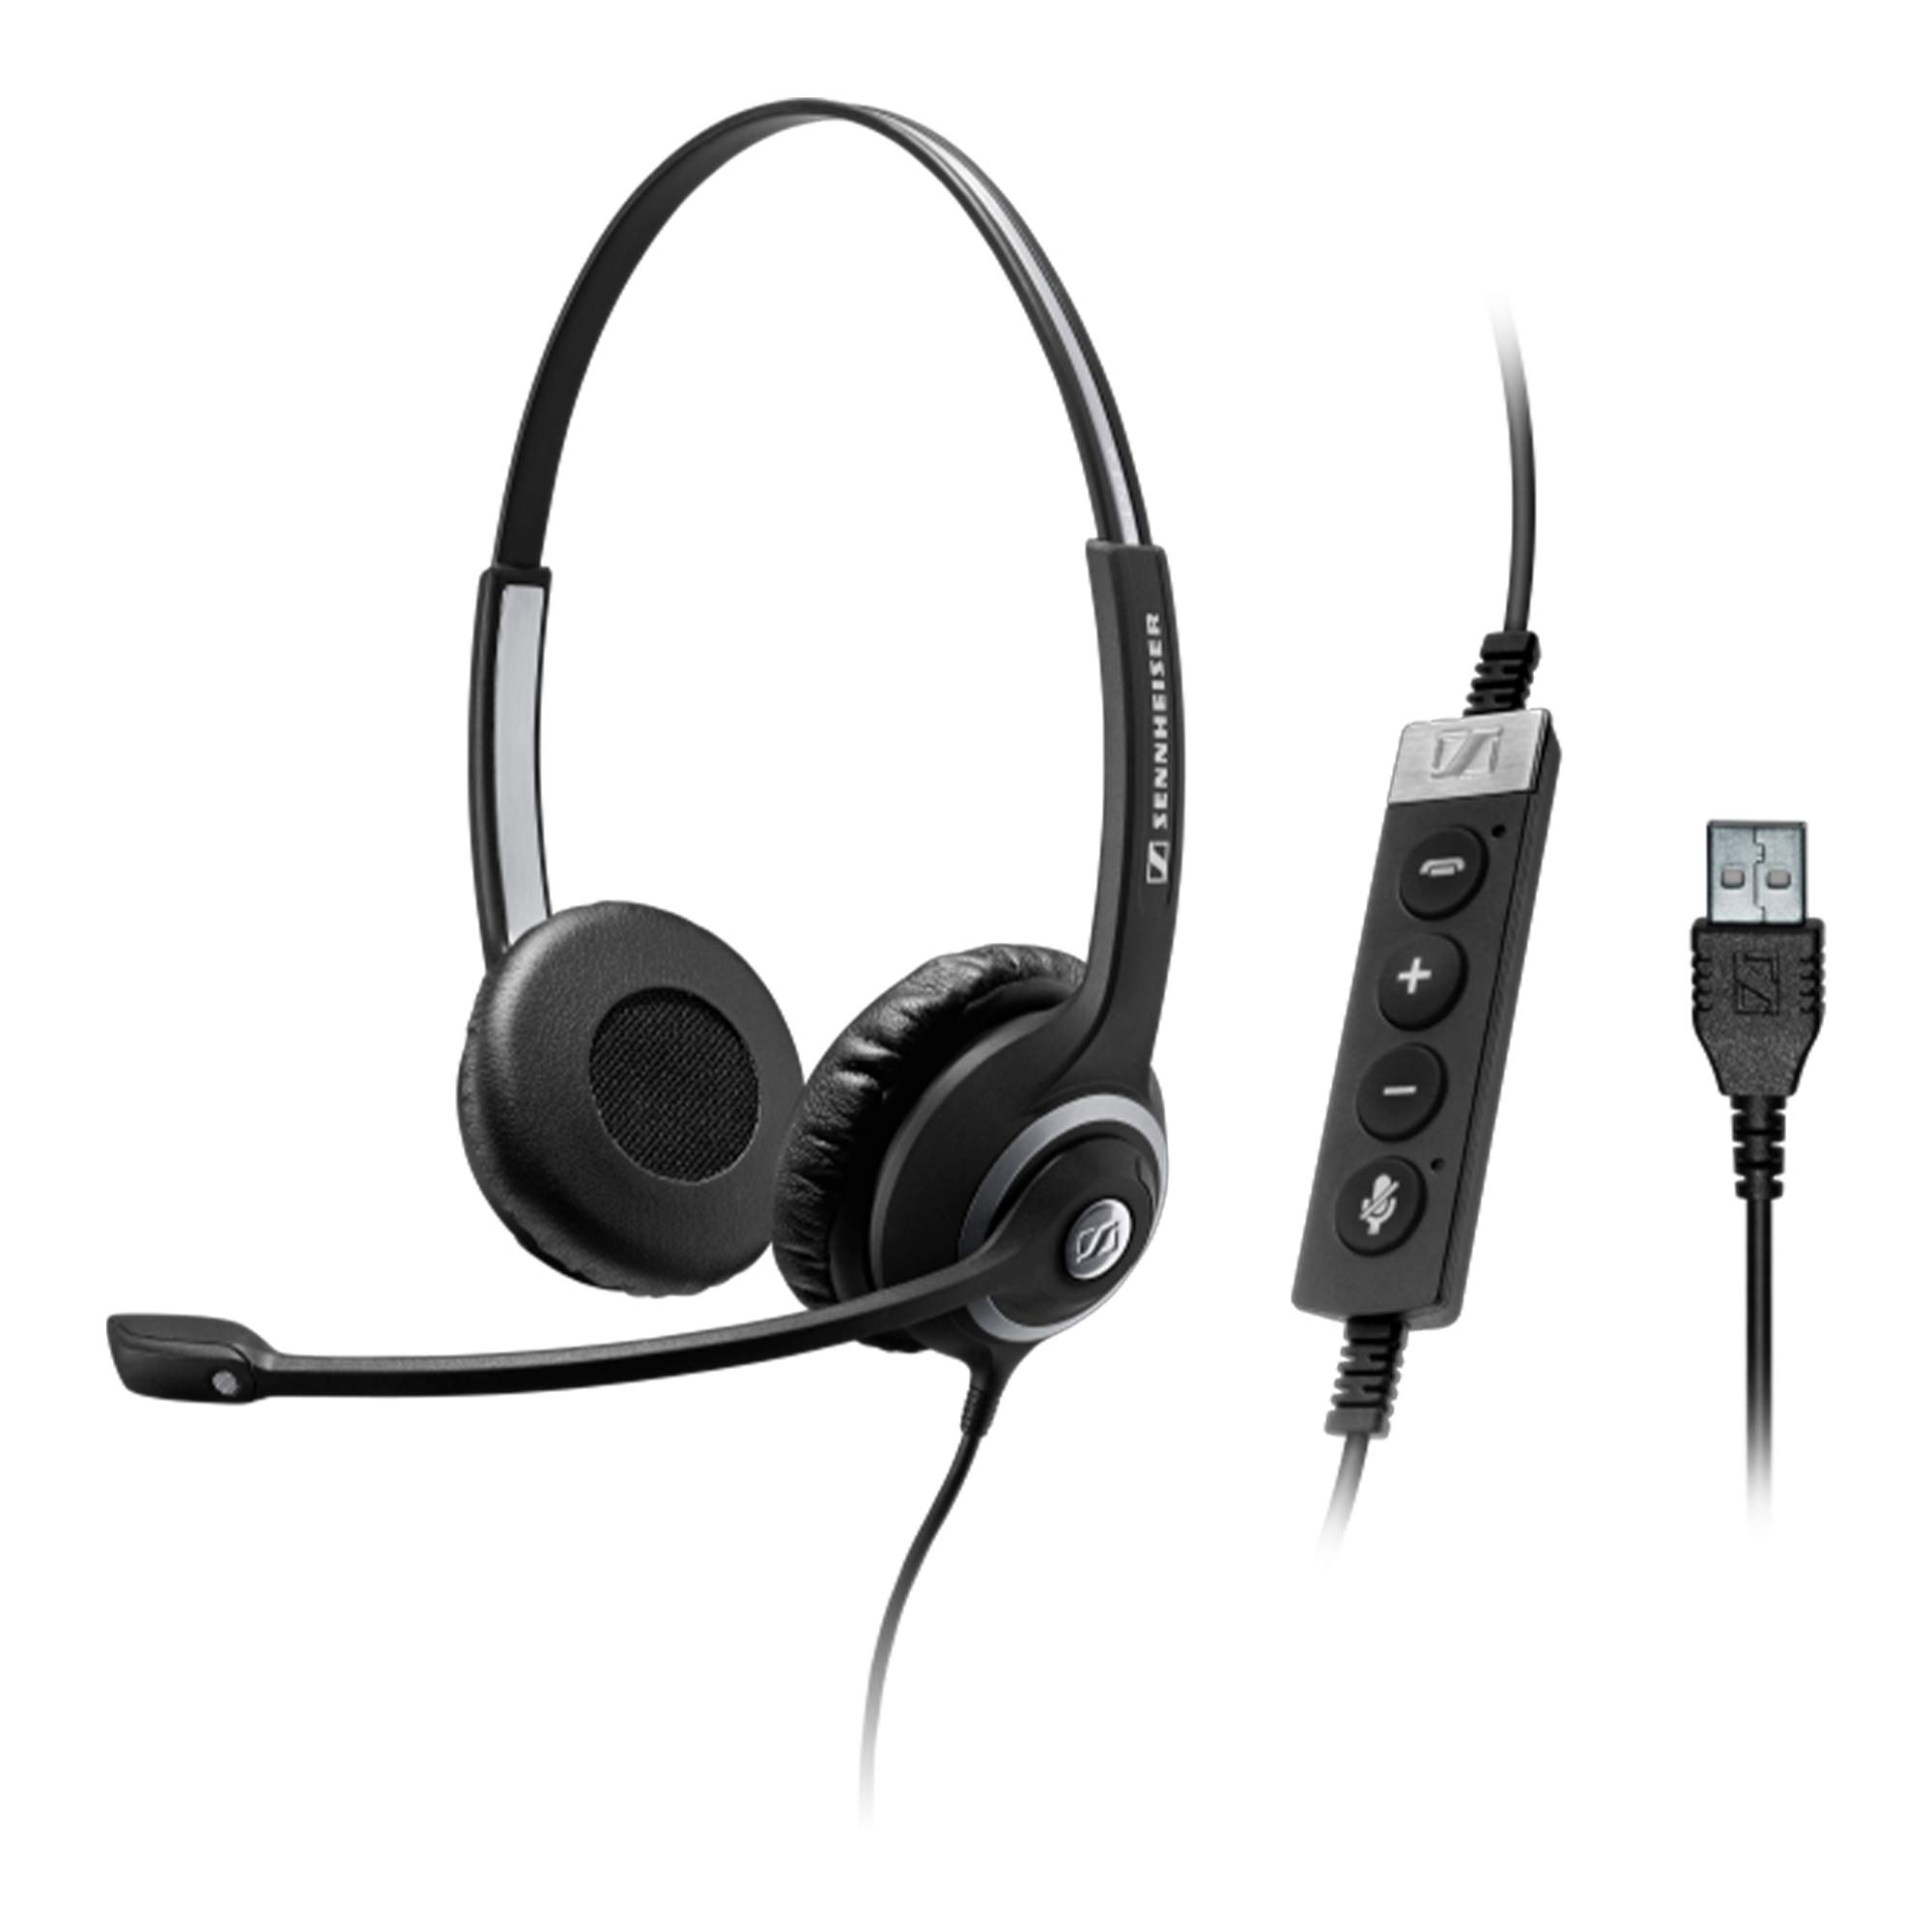 Sennheiser SC 260 USB CTRL II (506481) - Double-Sided Business Headset | For Unified Communications, Softphone, and PC | with HD Sound, Noise-Cancelling Microphon (Black) by Sennheiser Enterprise Solution